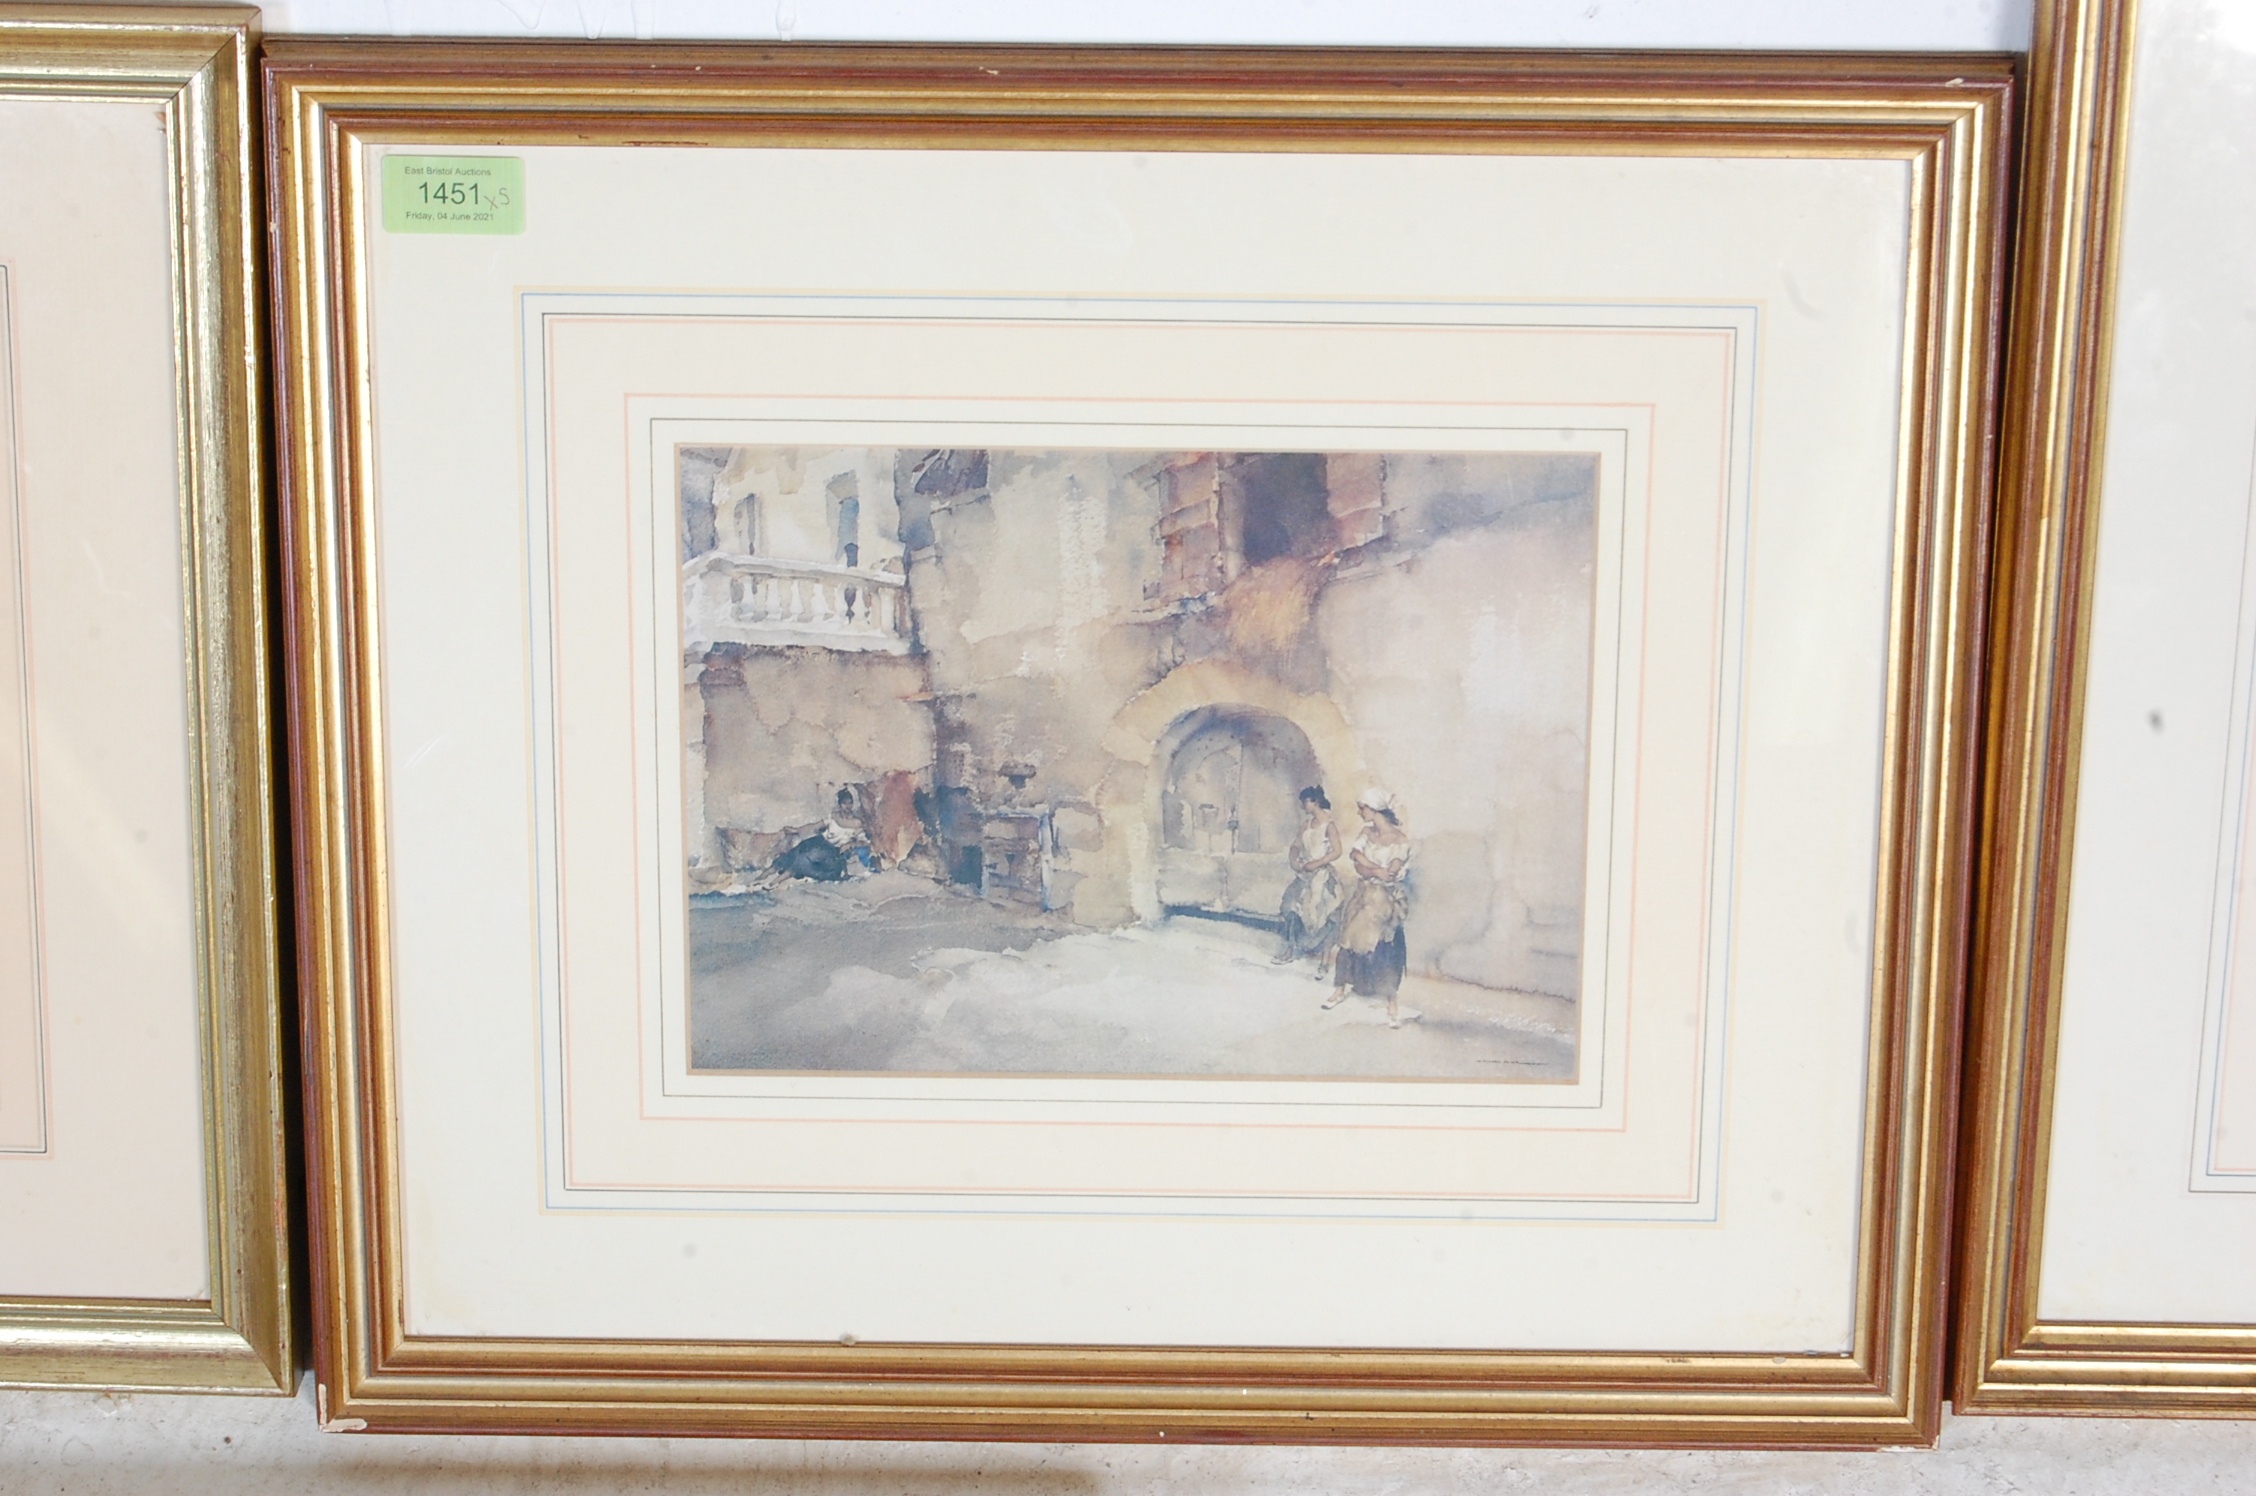 COLLECTION OF FIVE VINTAGE WILLIAM R. FLINT PICTURE PRINTS - Image 4 of 6